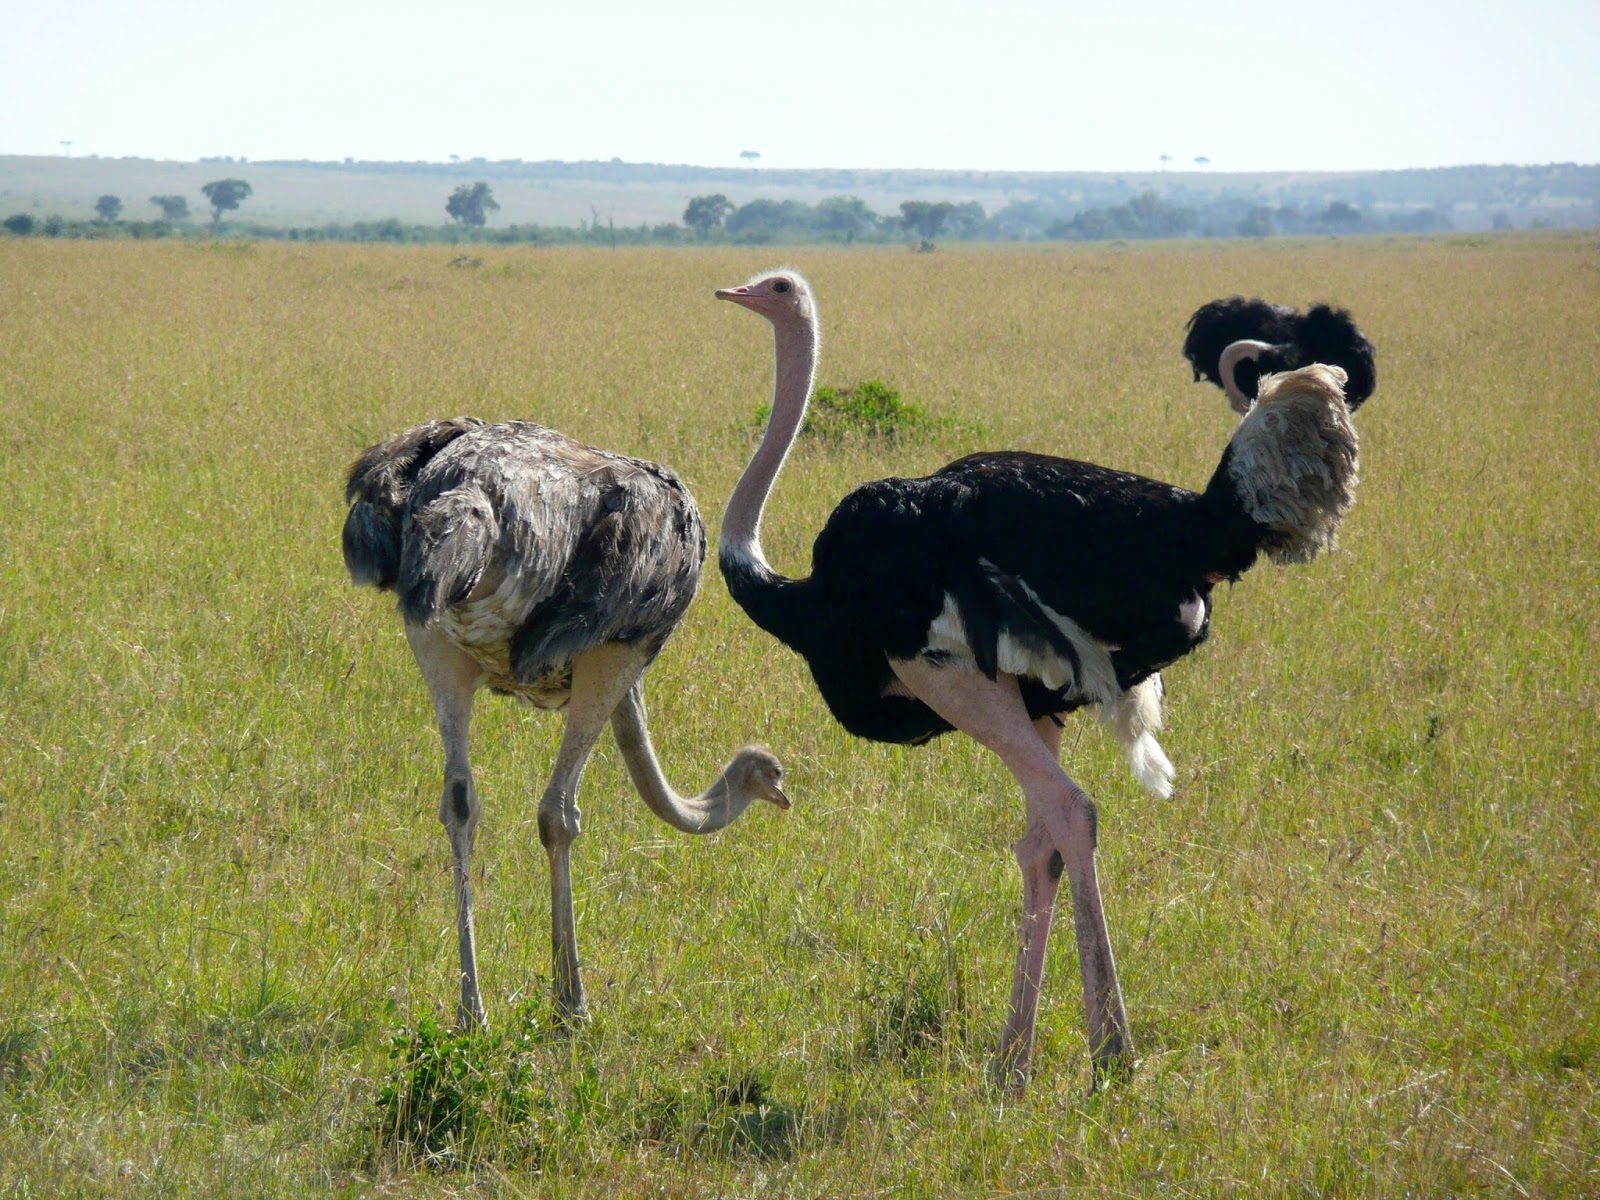 Male ostrich courting dance near a female.